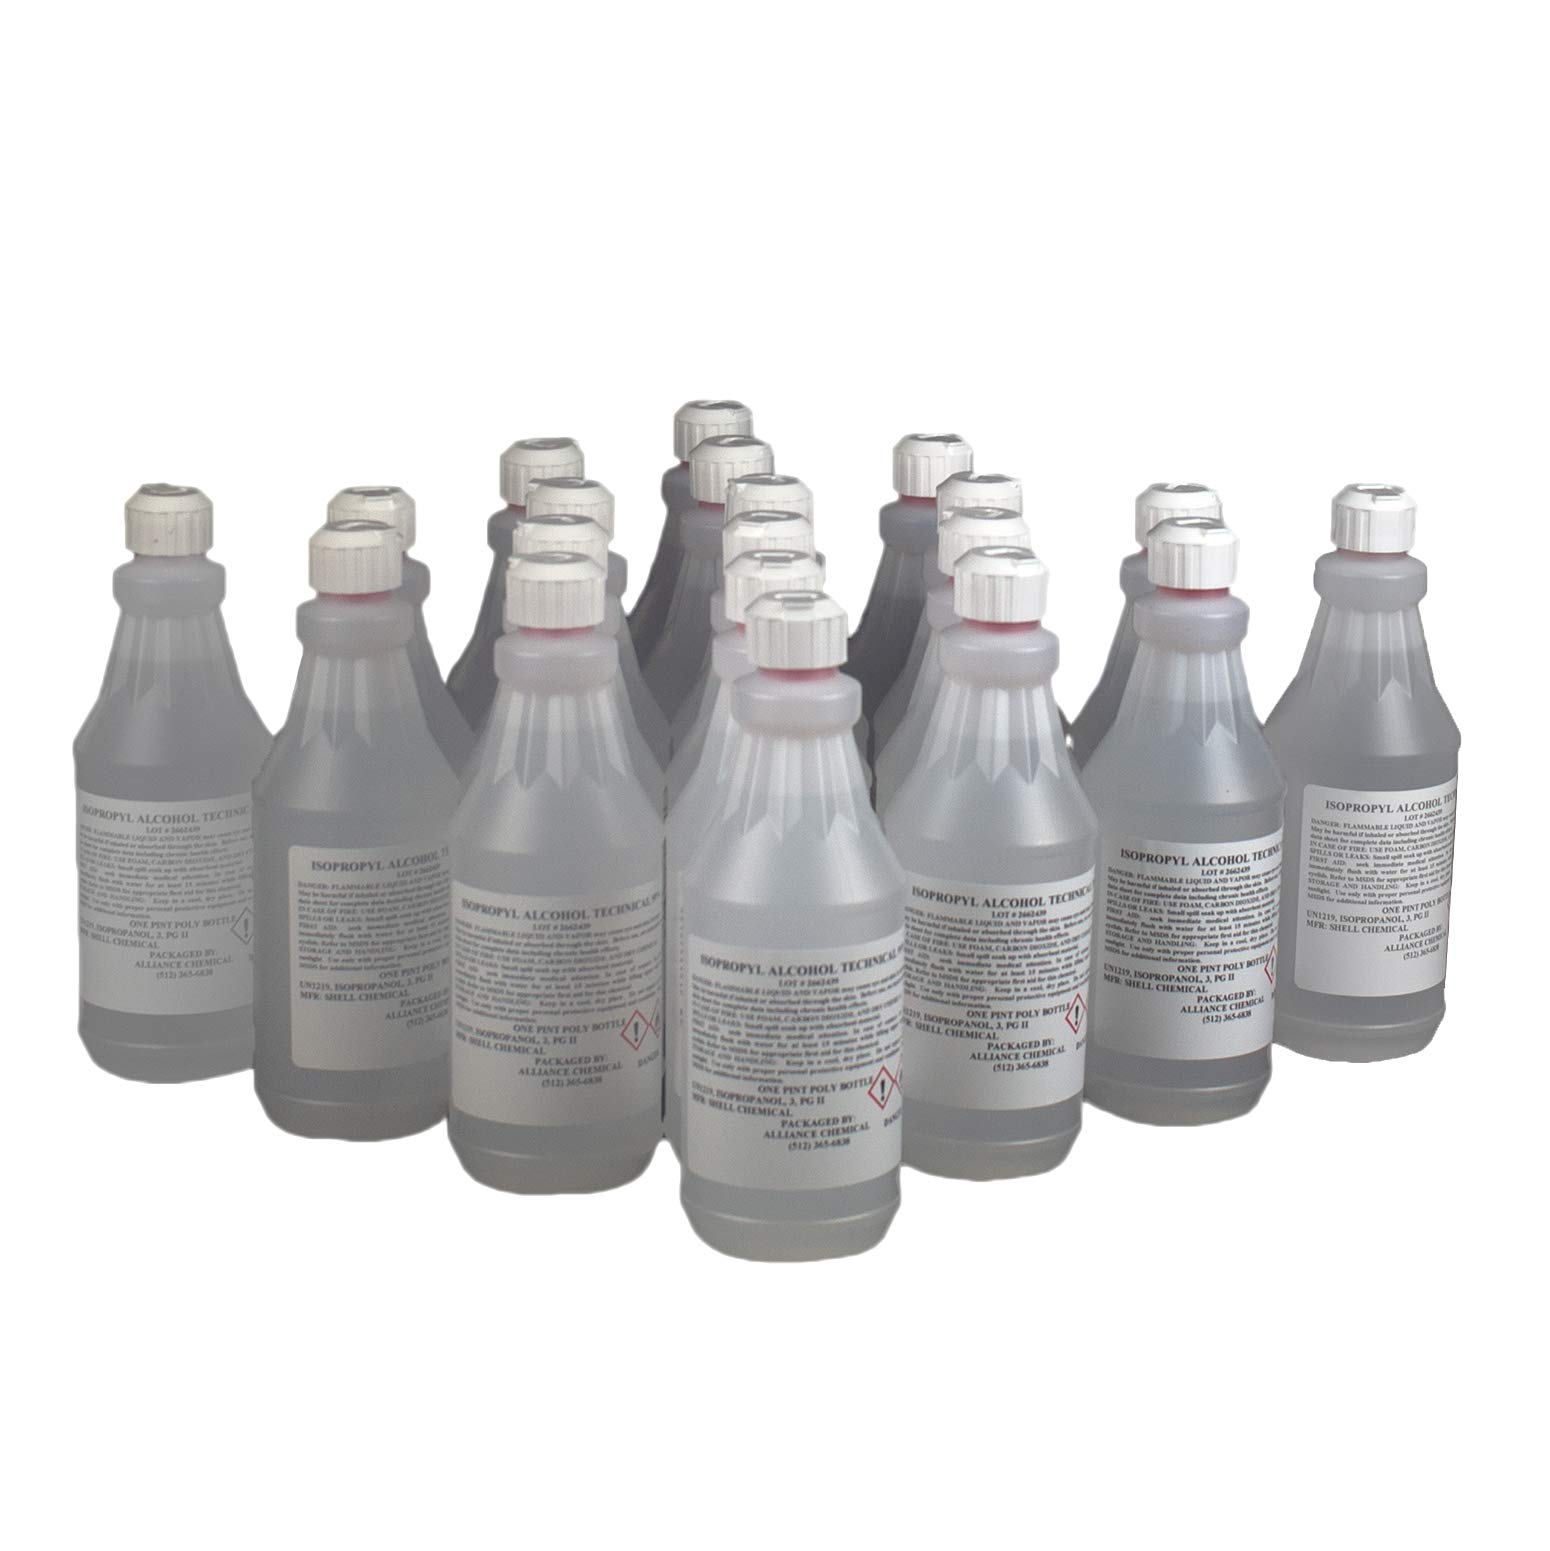 Isopropyl Alcohol 99% Technical Grade - 20 Pints by Alliance Chemical